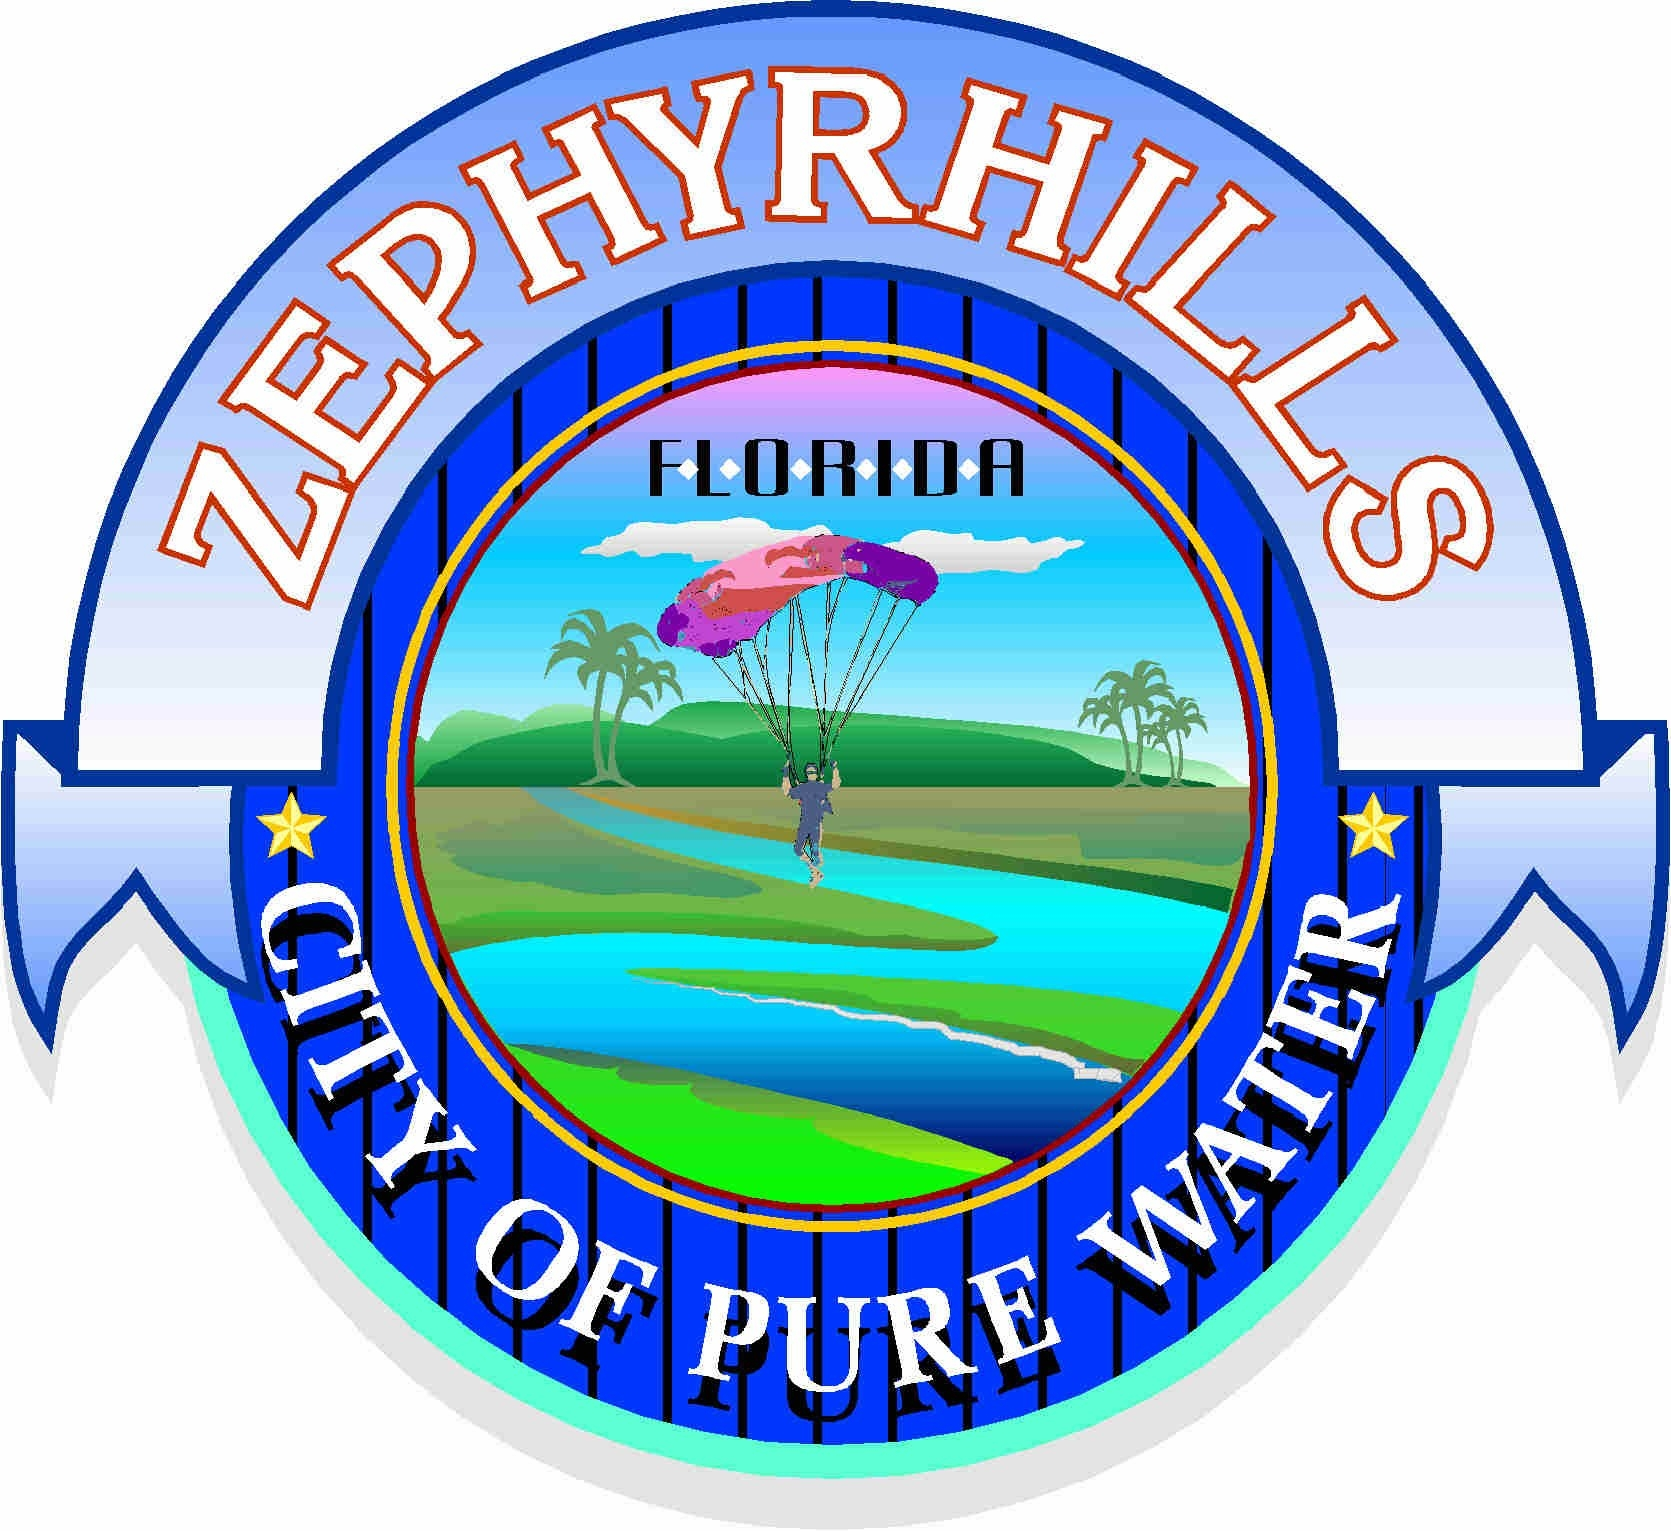 Organization logo of City of Zephyrhills